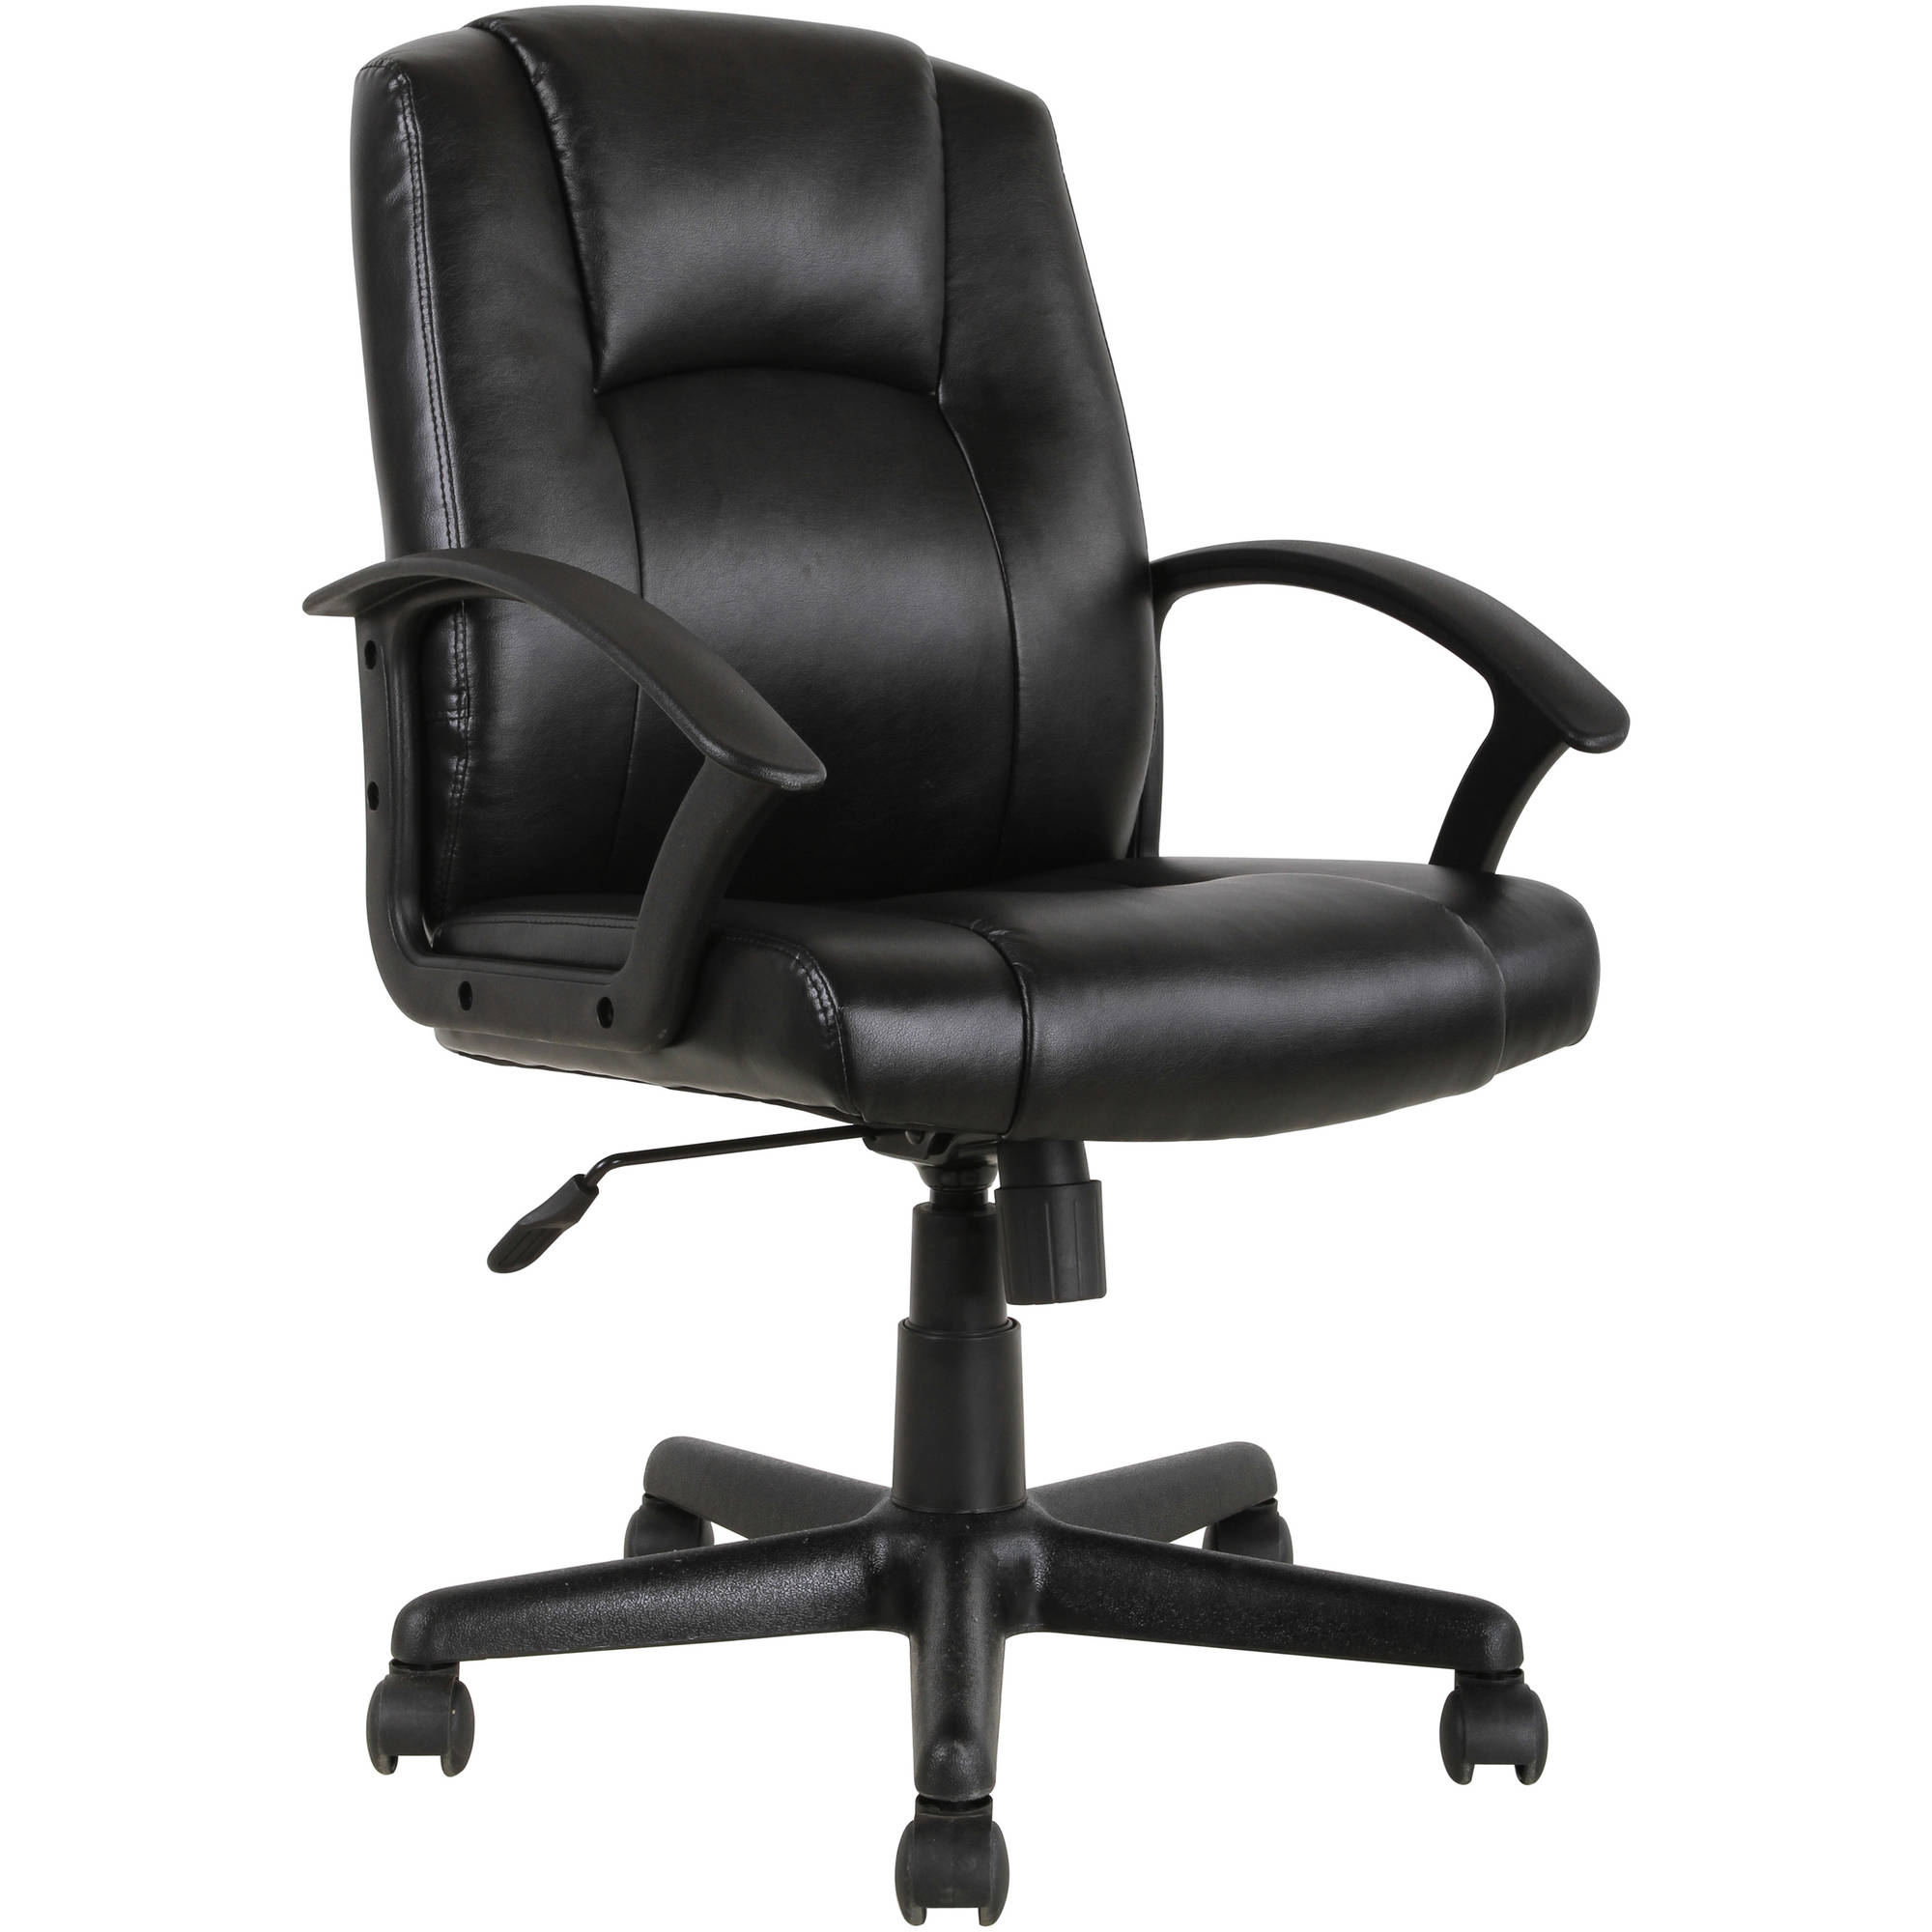 mainstays midback leather office chair black